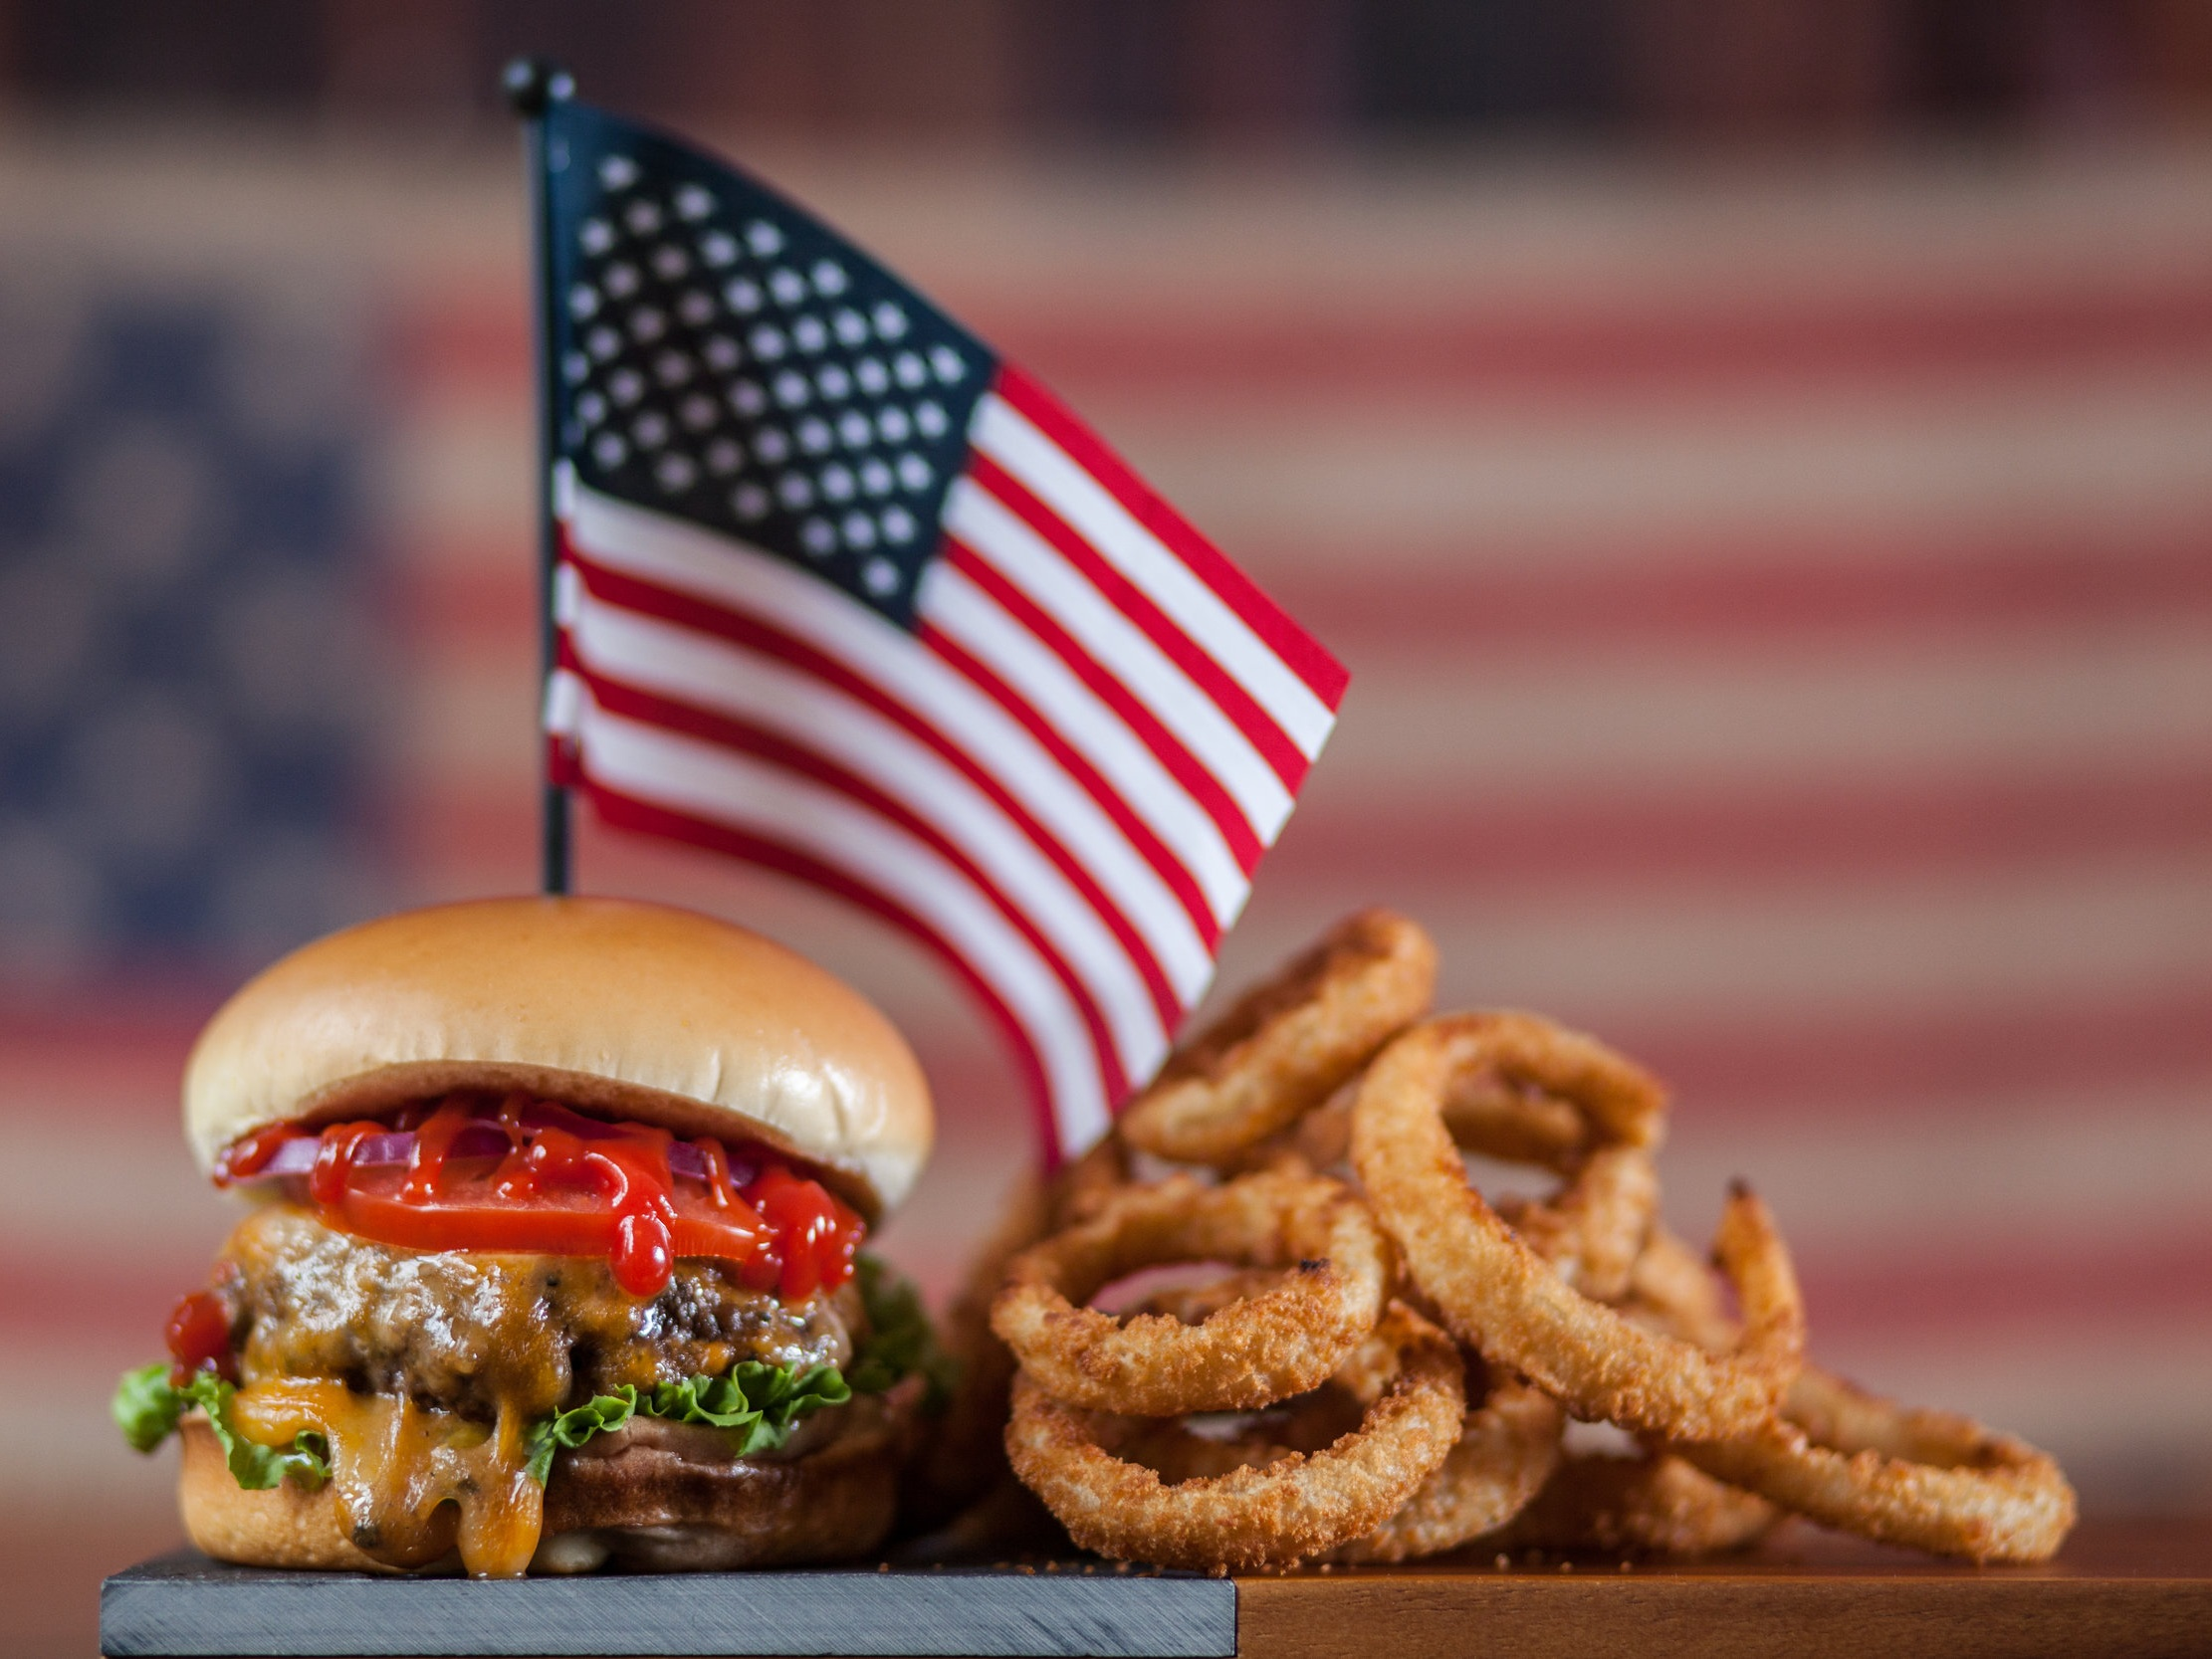 All-American Burger - The All-American burger gets you right in that sweet nostalgia spot for summers of youth and whatnot. Classic and perfect, with onions, pickles, tomatoes, and cheddar cheese. Perhaps the perfect burger for holiday salutations.